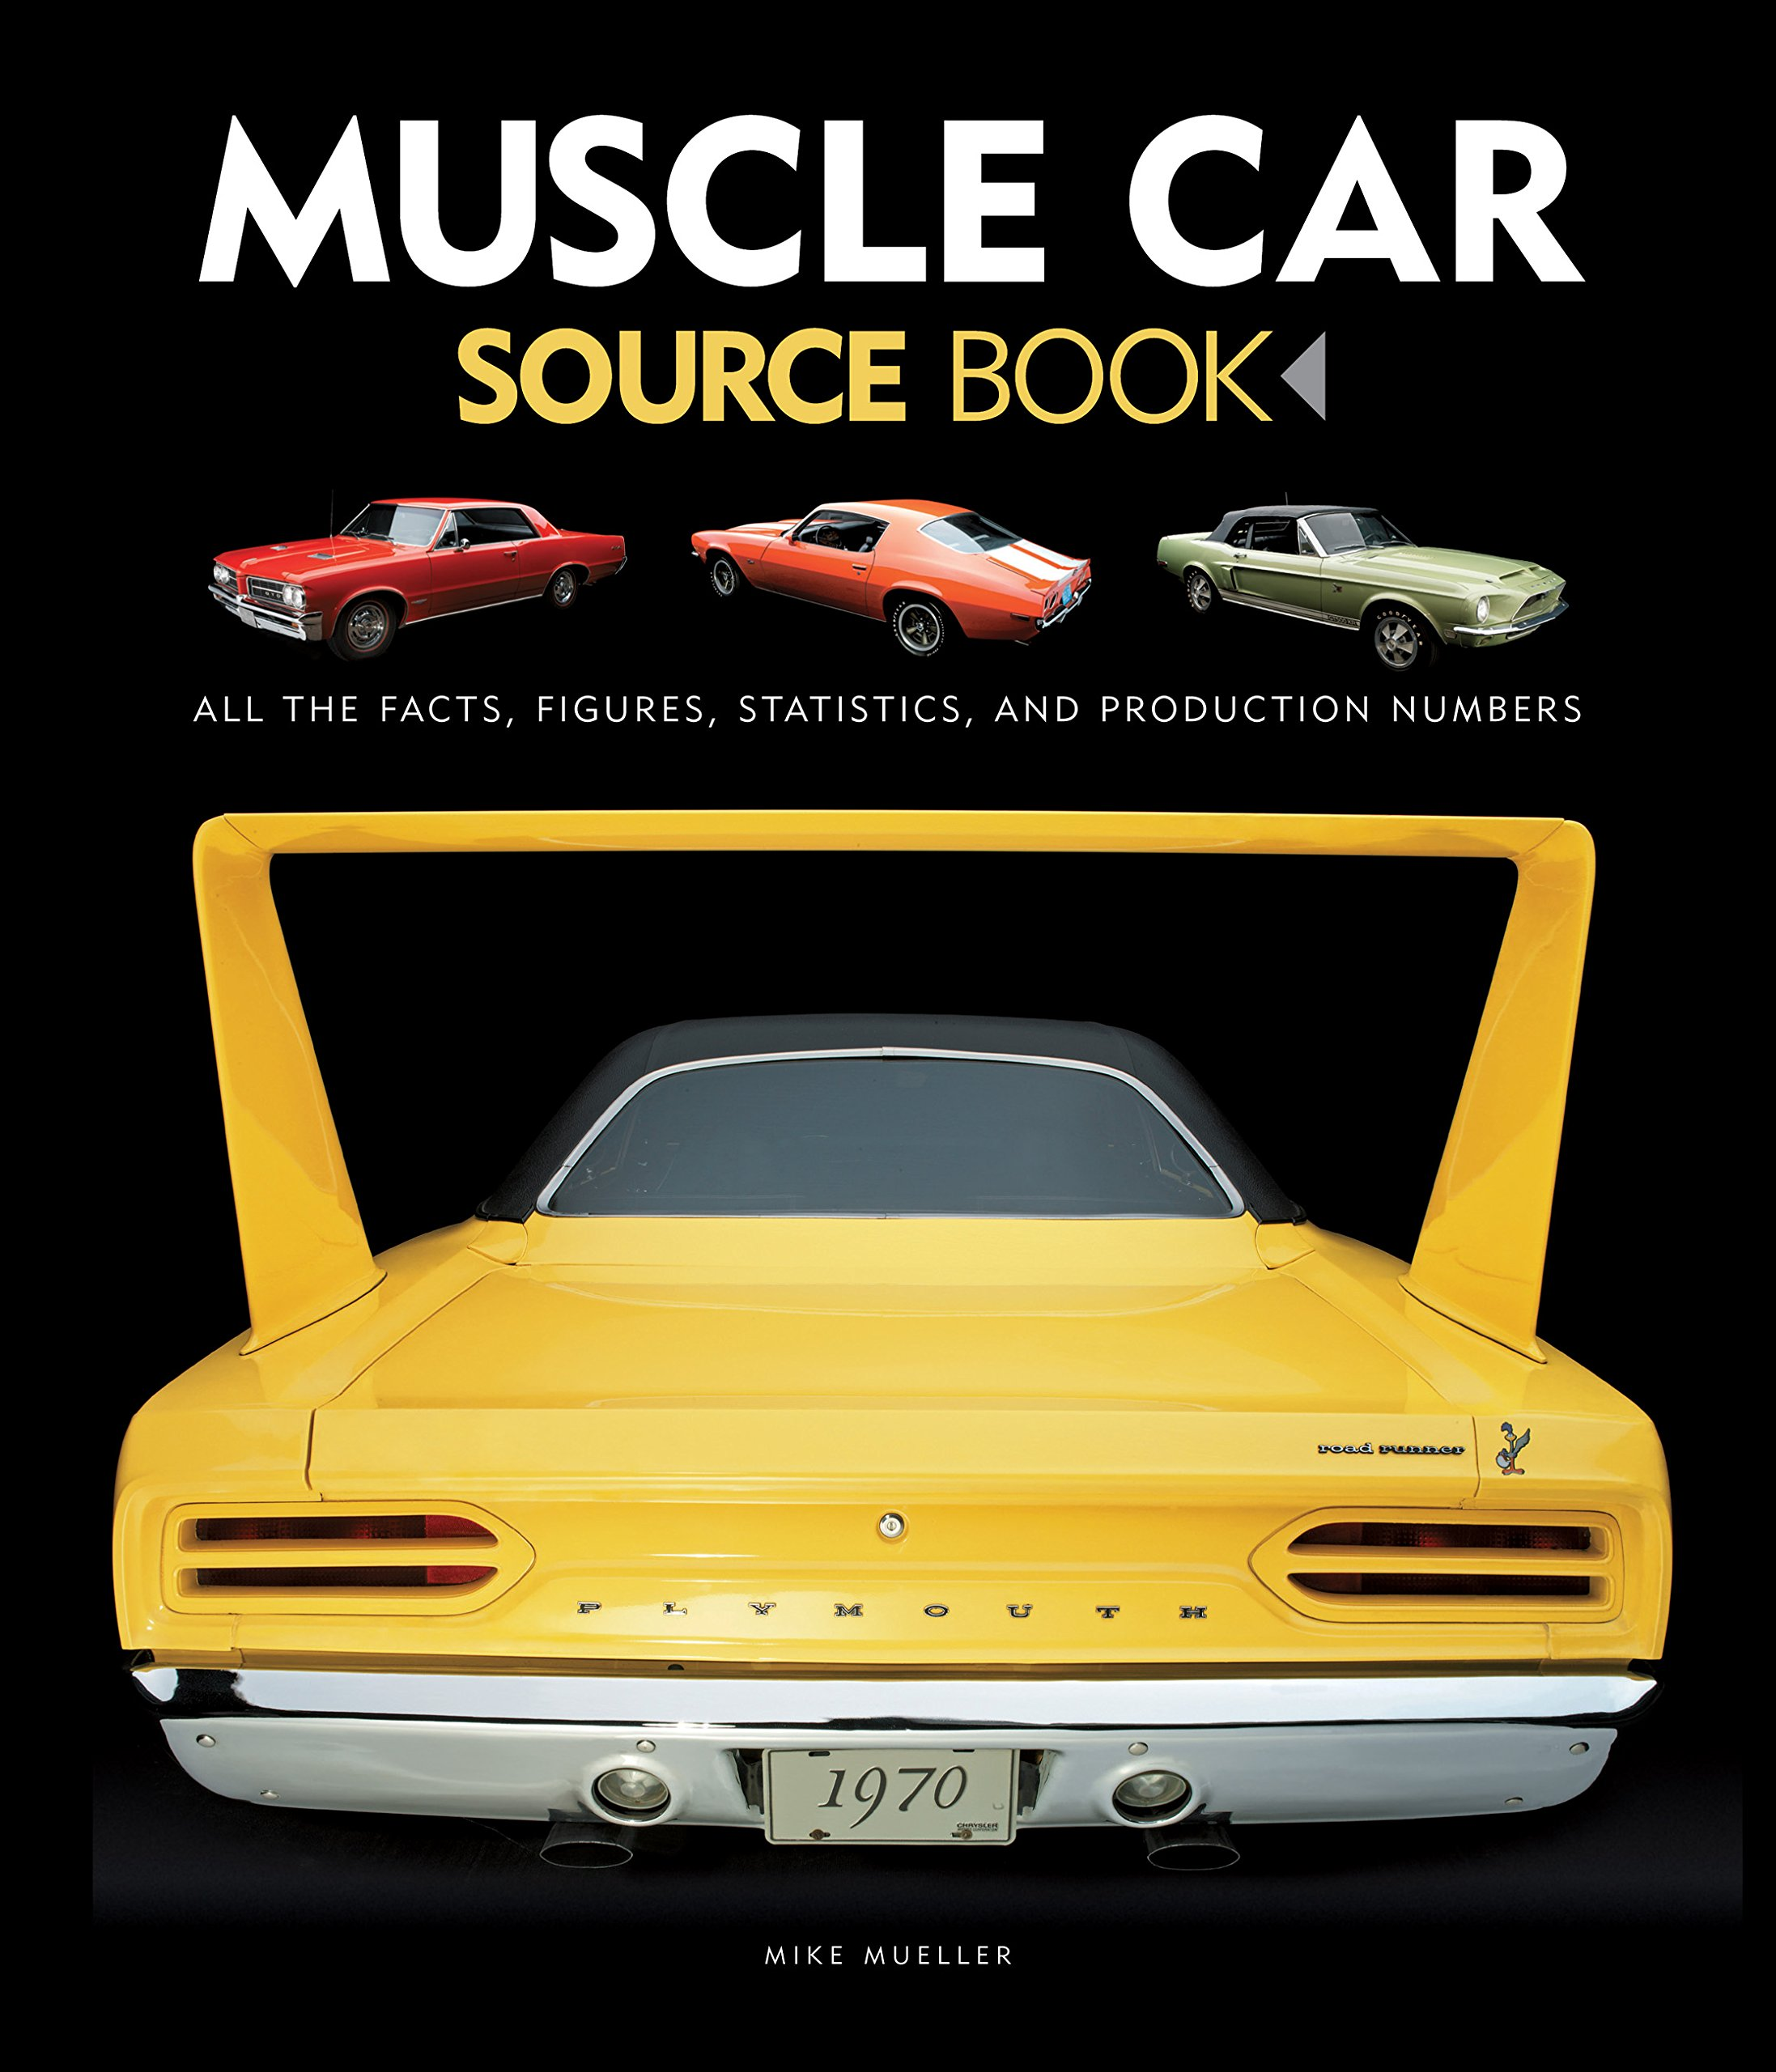 Muscle Car Source Book: All the Facts, Figures, Statistics, and Production  Numbers: Mike Mueller: 9780760348574: Amazon.com: Books